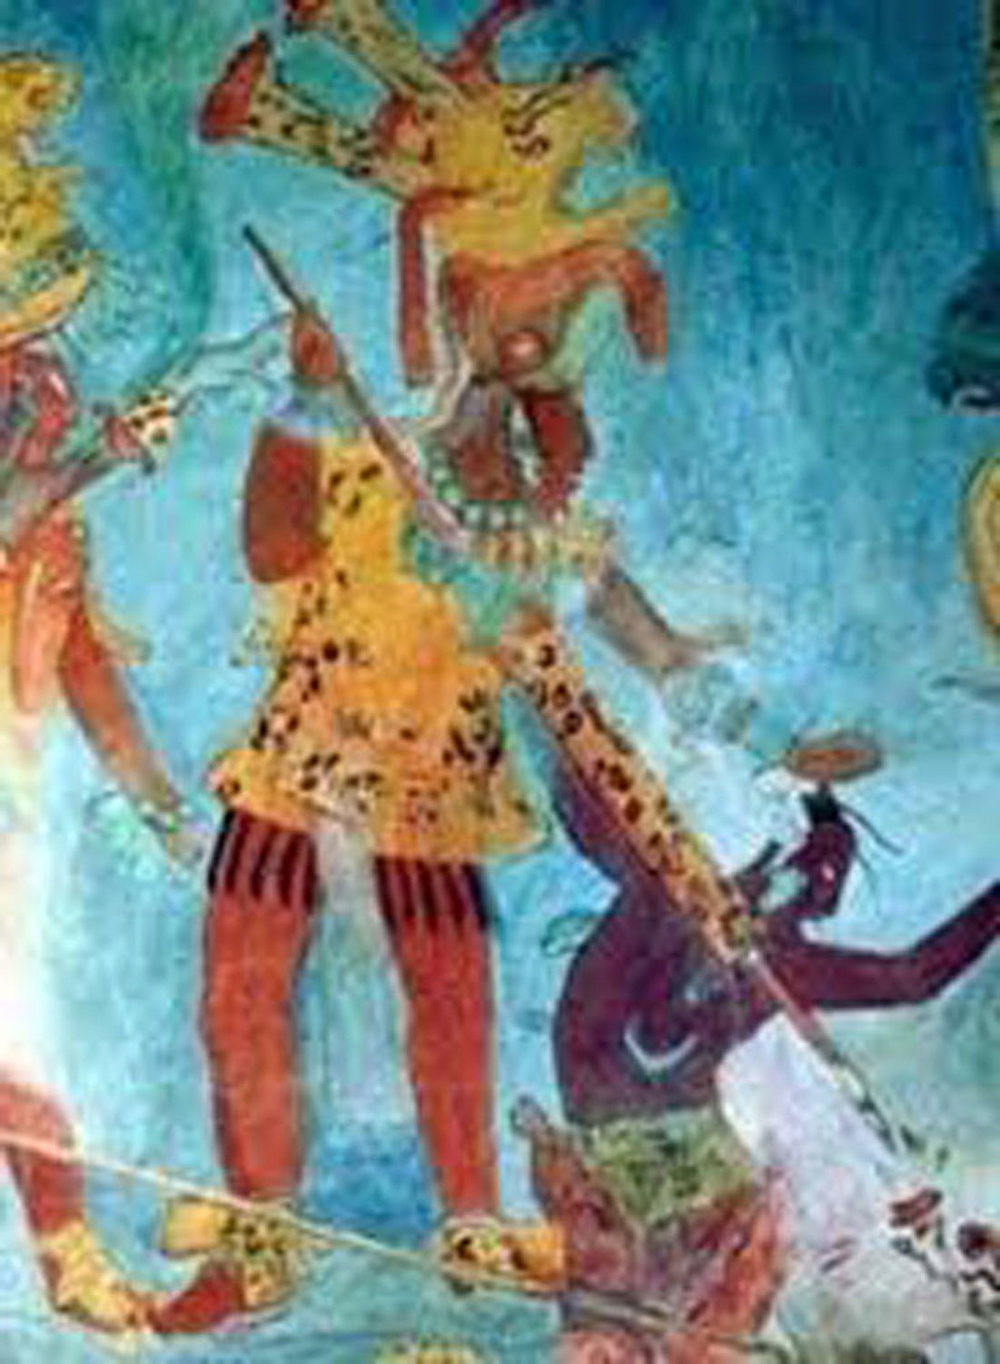 Bonmpak mural: Yajaw Chaan Muwan capturing an enemy.